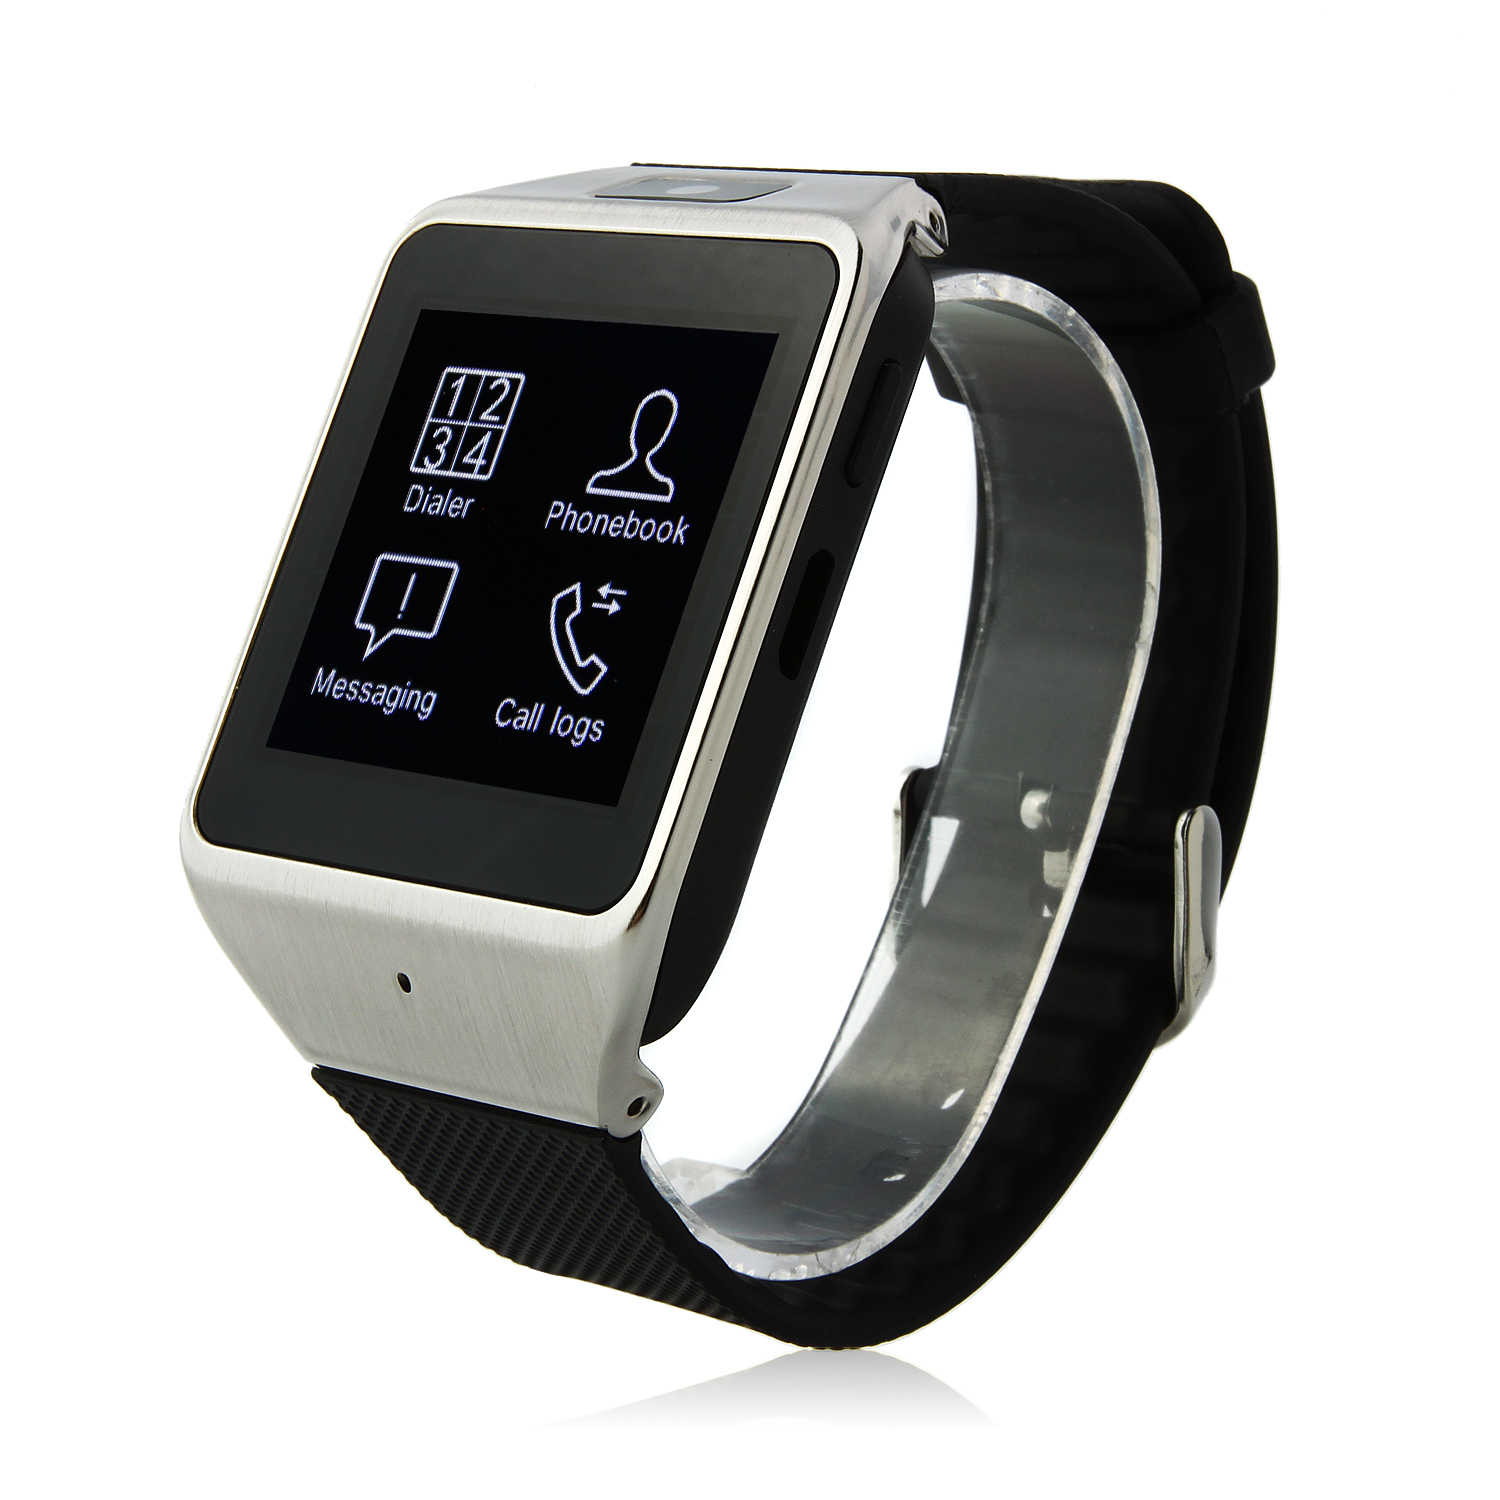 Atongm W007 Smart Bluetooth Watch 1.54 Inch Touch Screen with Camera - Black